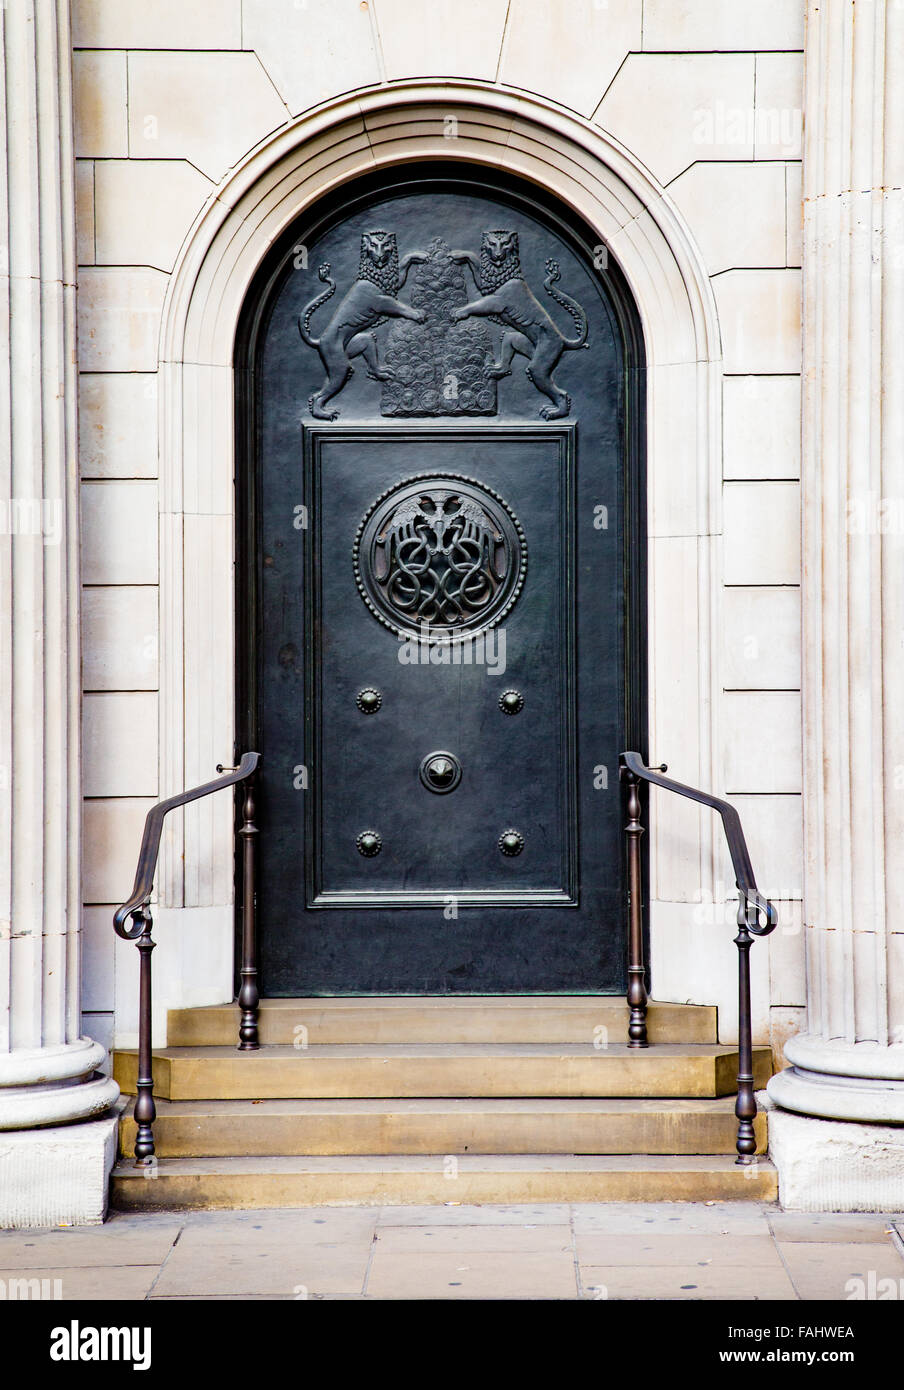 Bronze sculpted side door of the Bank of England building in Threadneedle Street in the City of London UK - Stock Image